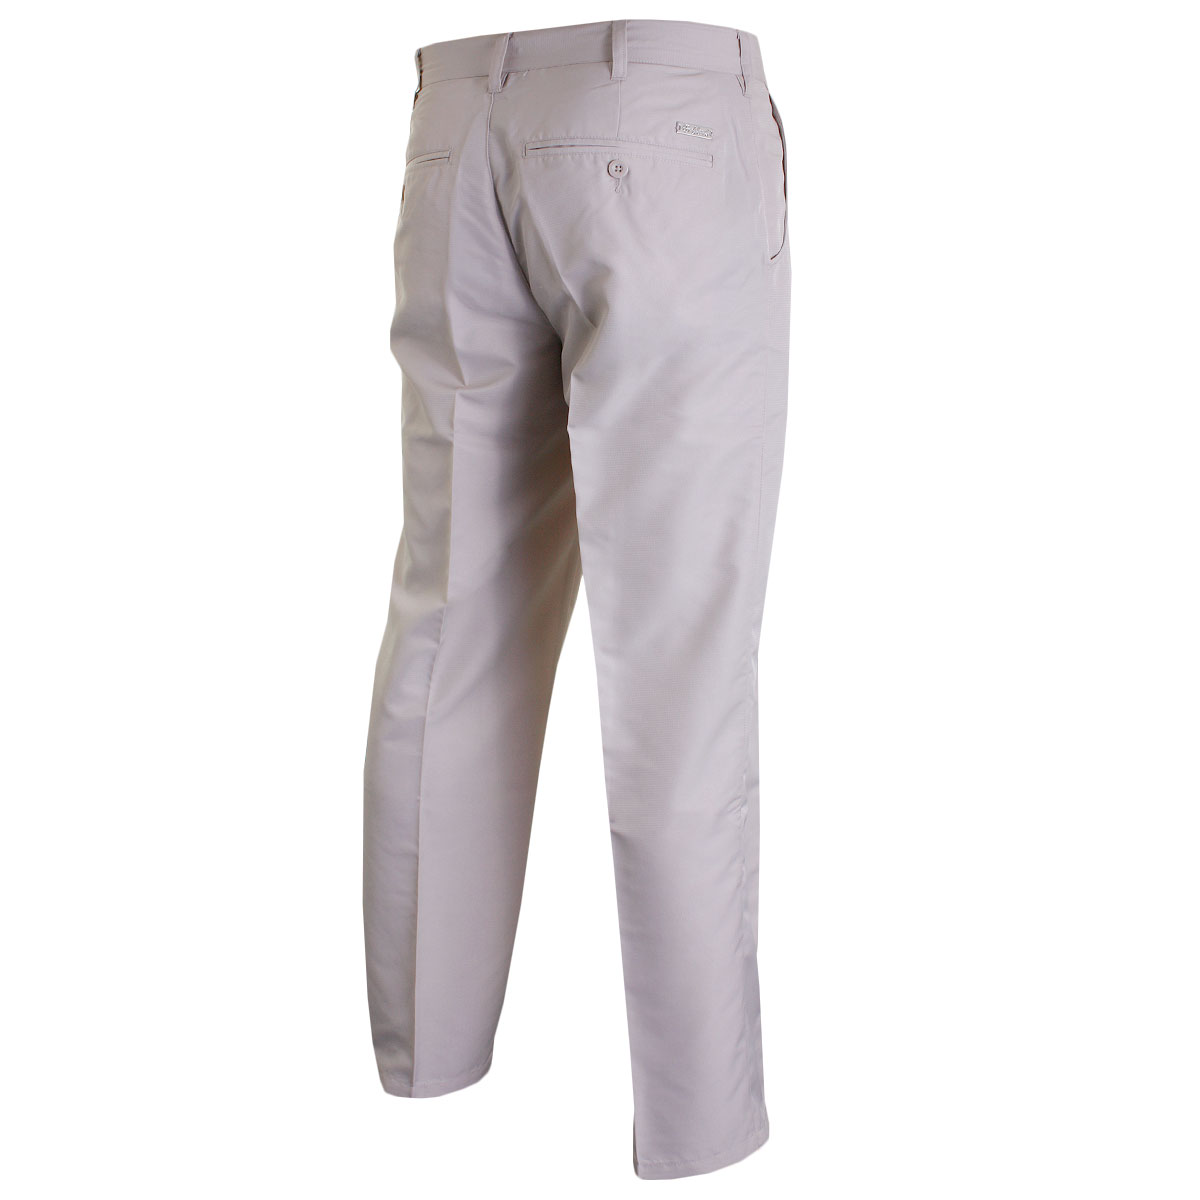 Island-Green-Mens-Tour-Golf-Trousers-Performance-Pant-57-OFF-RRP thumbnail 15